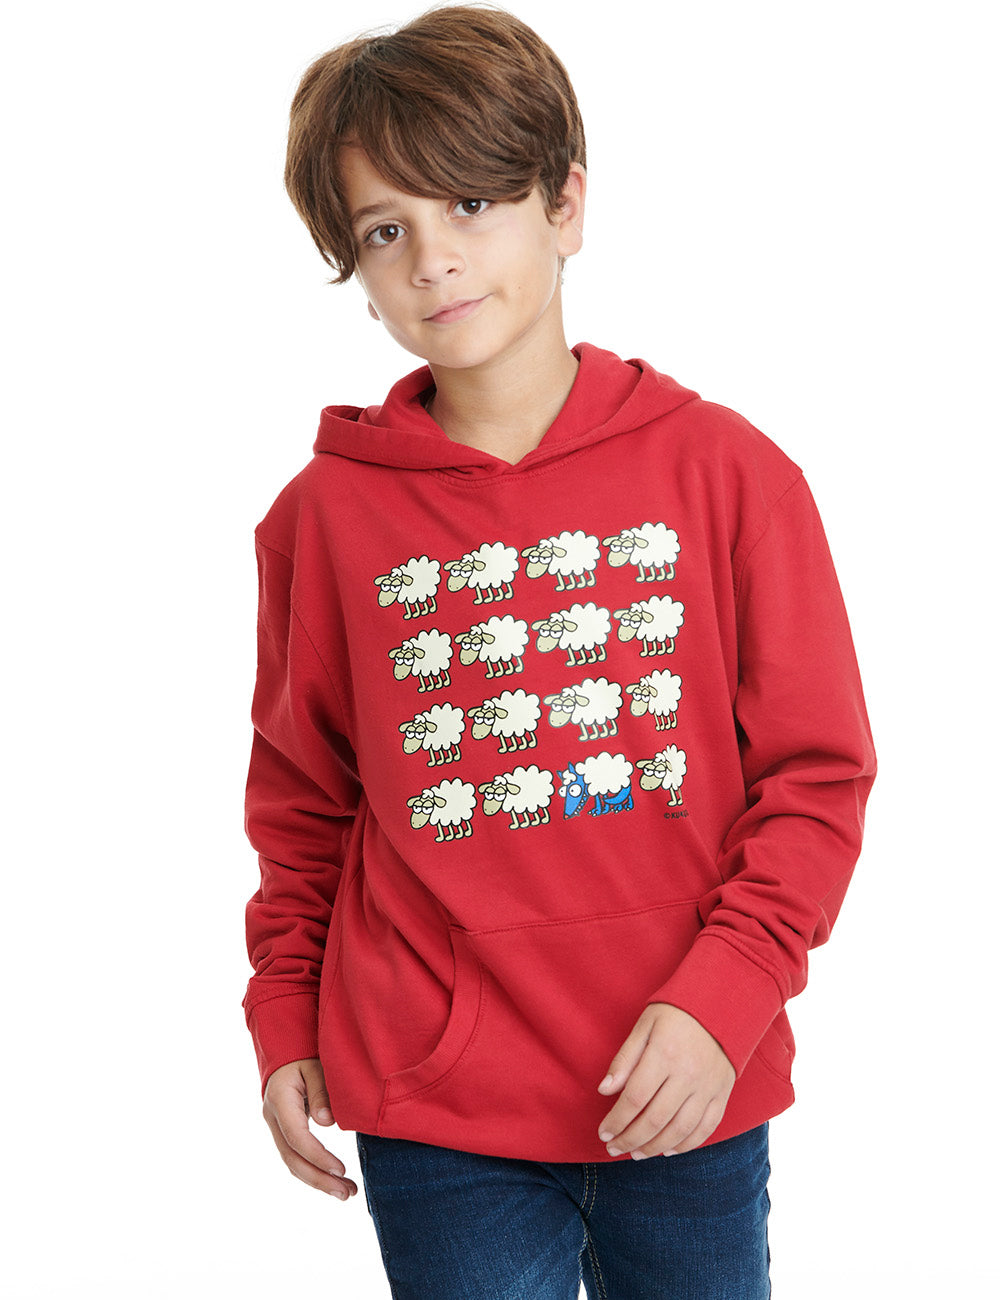 Escondido kukuxumusu hoodie boy red